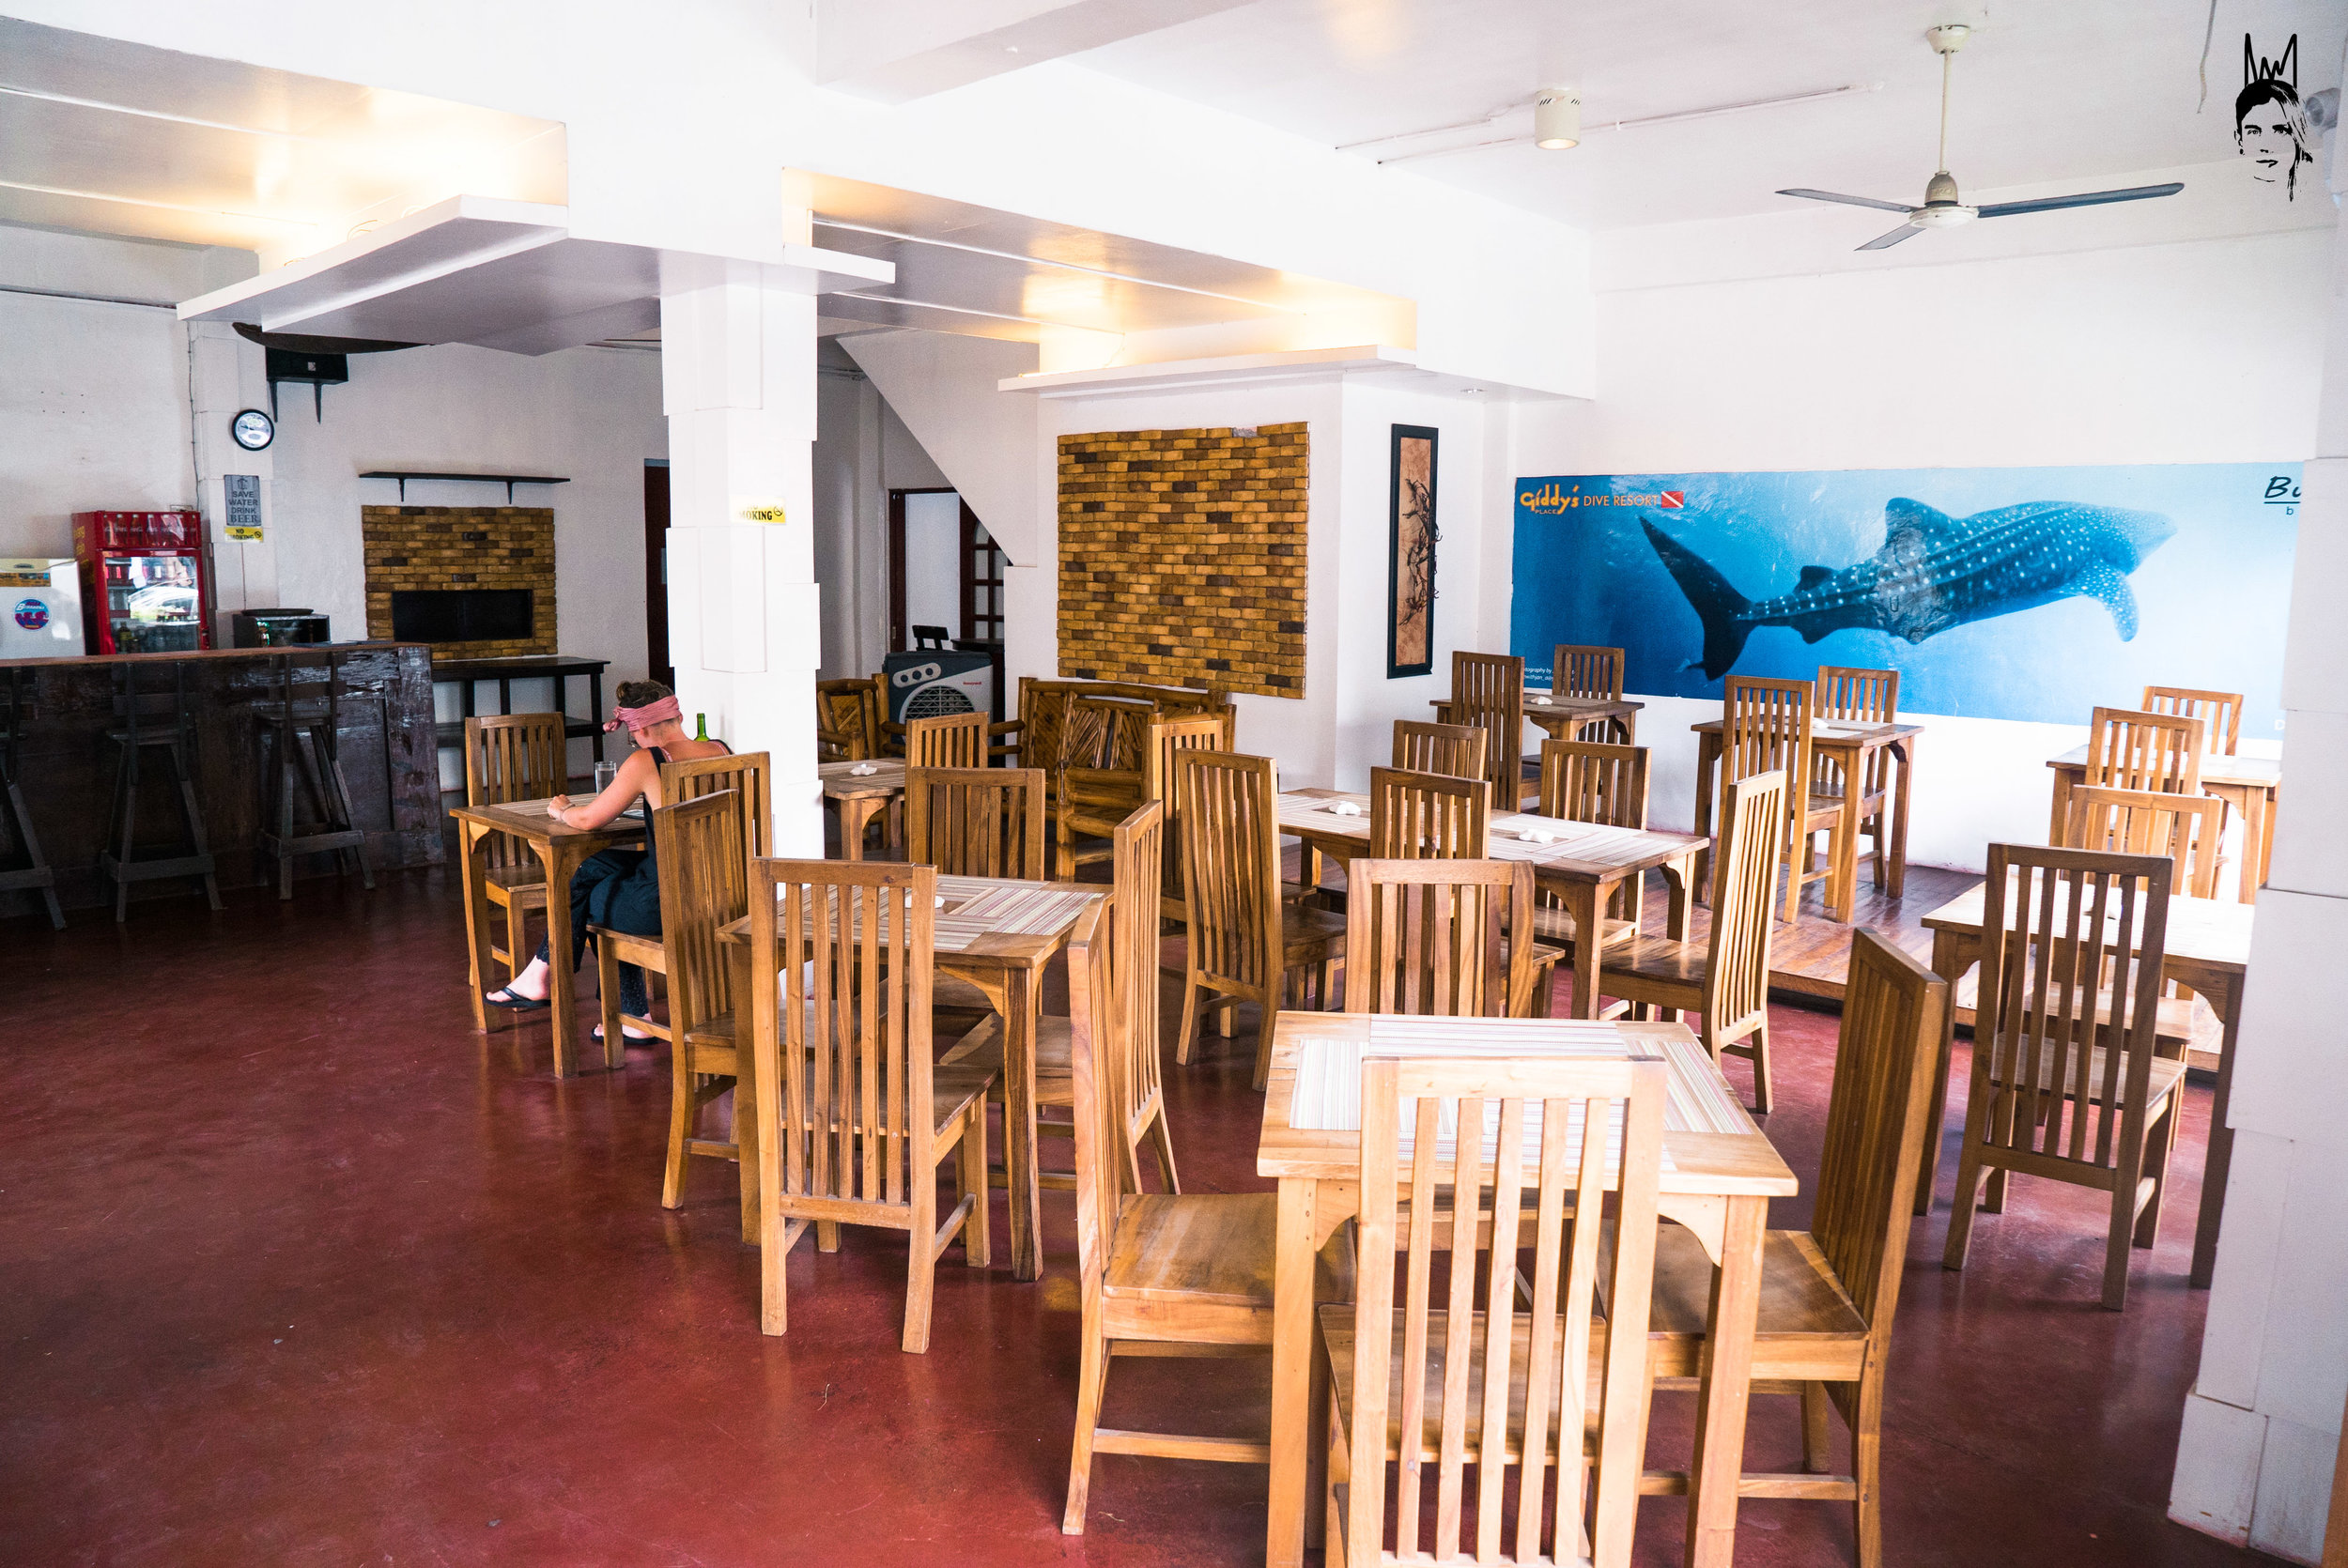 Restaurant in Giddy's Place